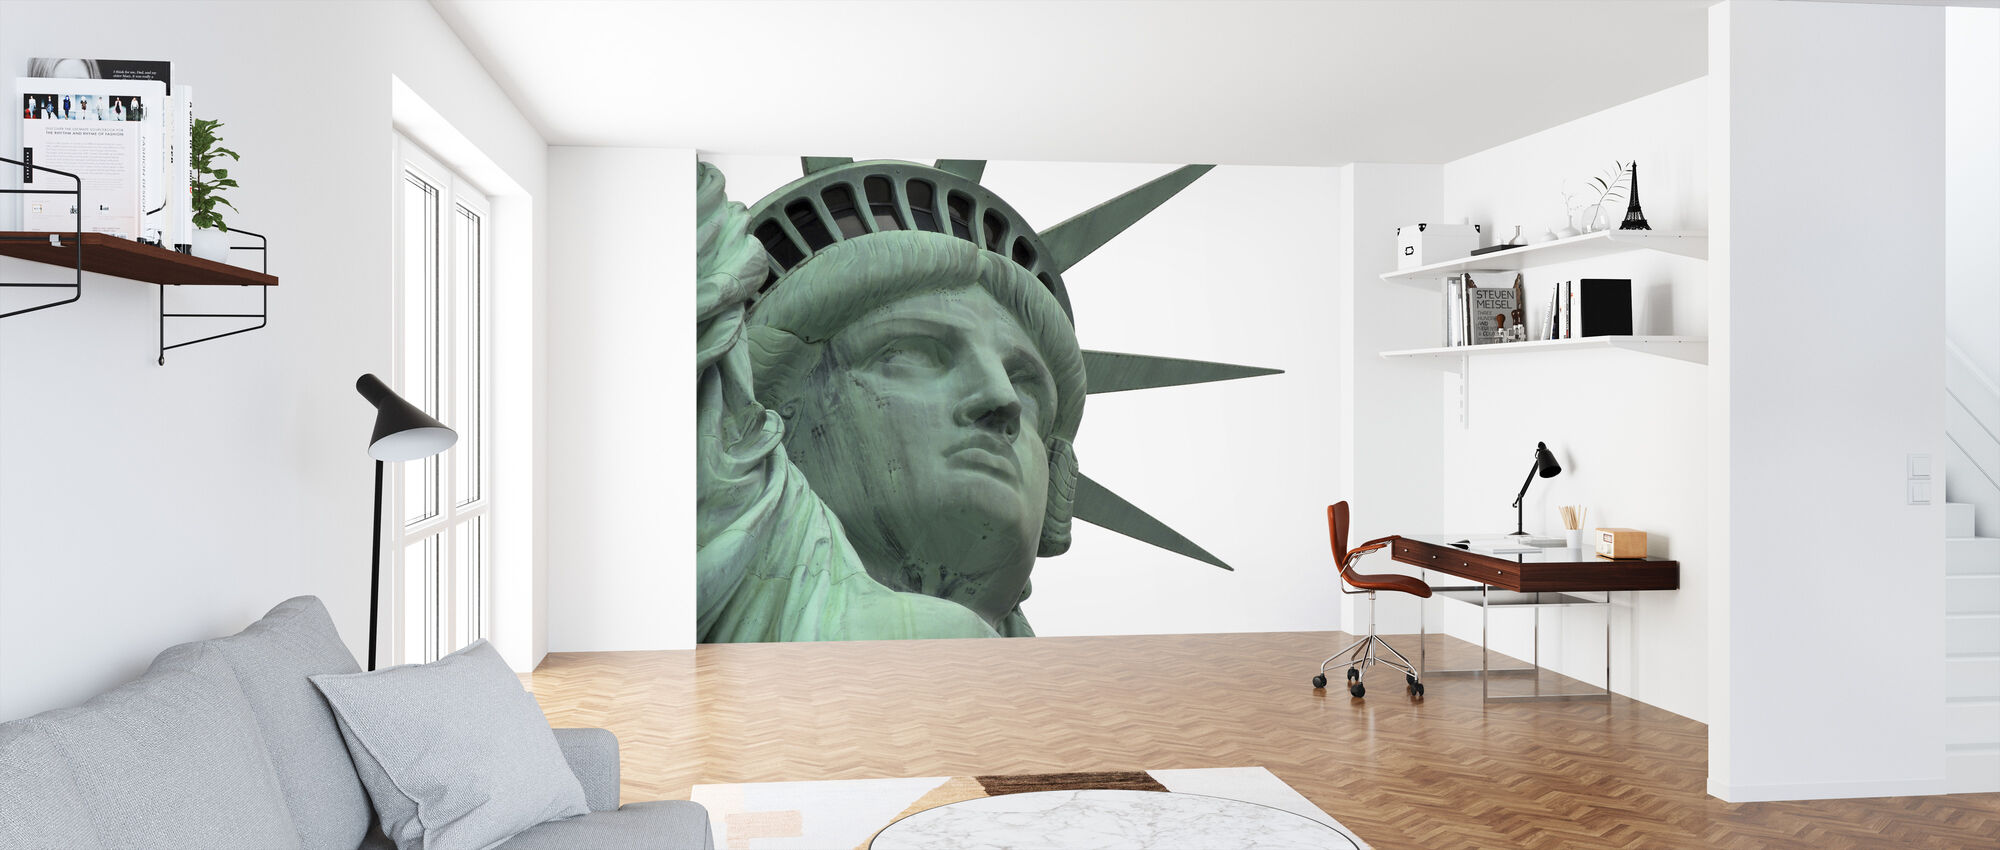 Close Up Statue of Liberty - Wallpaper - Office